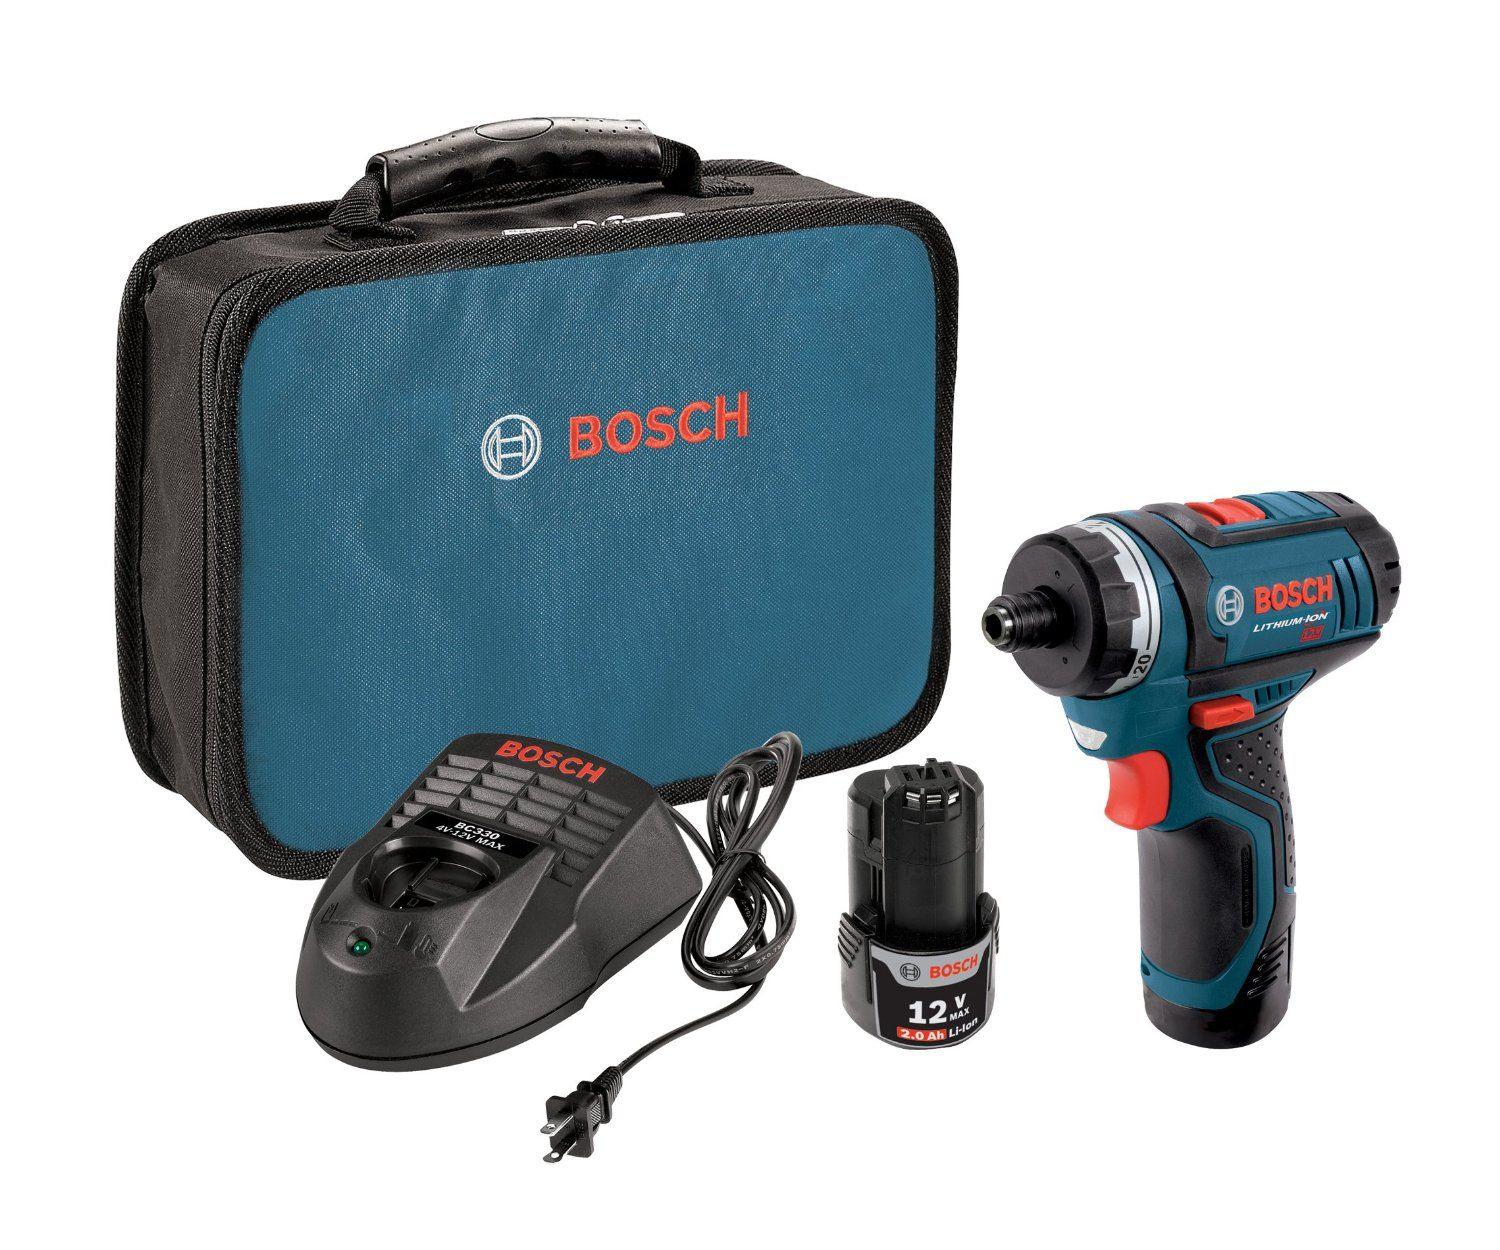 Bosch Ps21 2a 12 Volt Max Lithium Ion 2 Speed Pocket Driver Kit With 2 Batteries Charger And Case Continue With Images Cordless Drill Reviews Combo Kit Cordless Drill